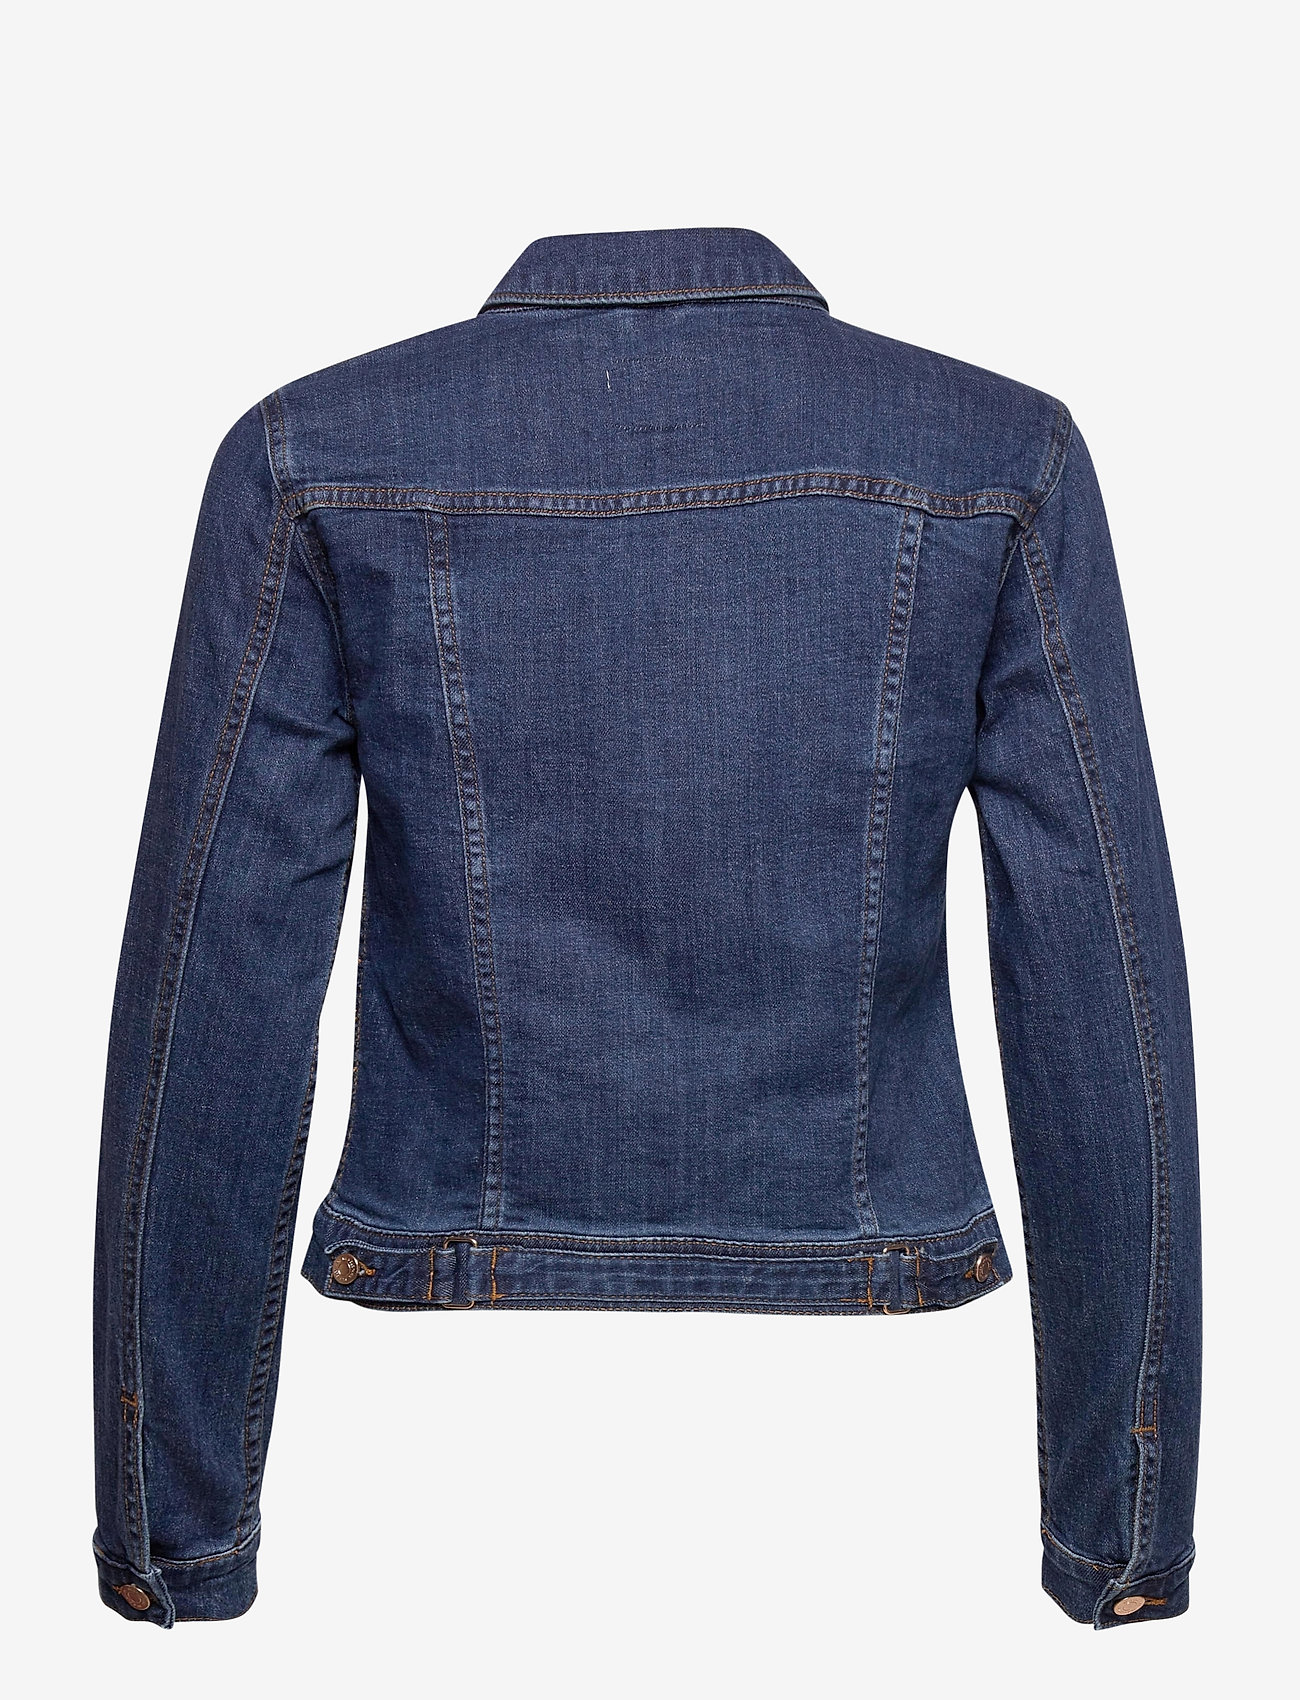 Vila - VISHOW DENIM JACKET - NOOS - denim jackets - medium blue denim - 1